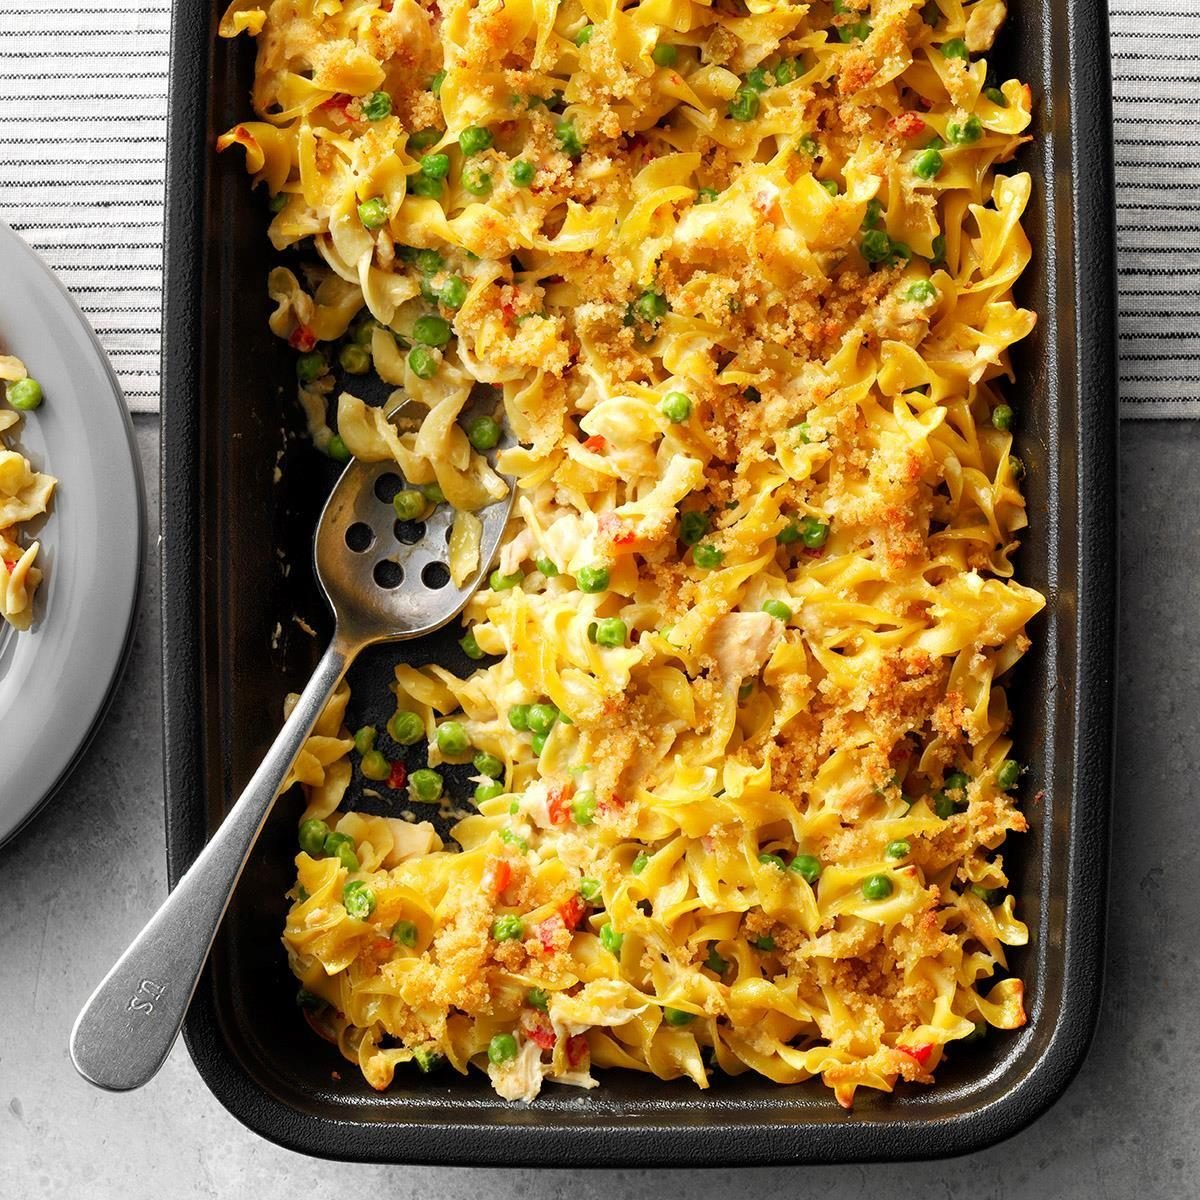 The Most Popular Casserole From Every Decade